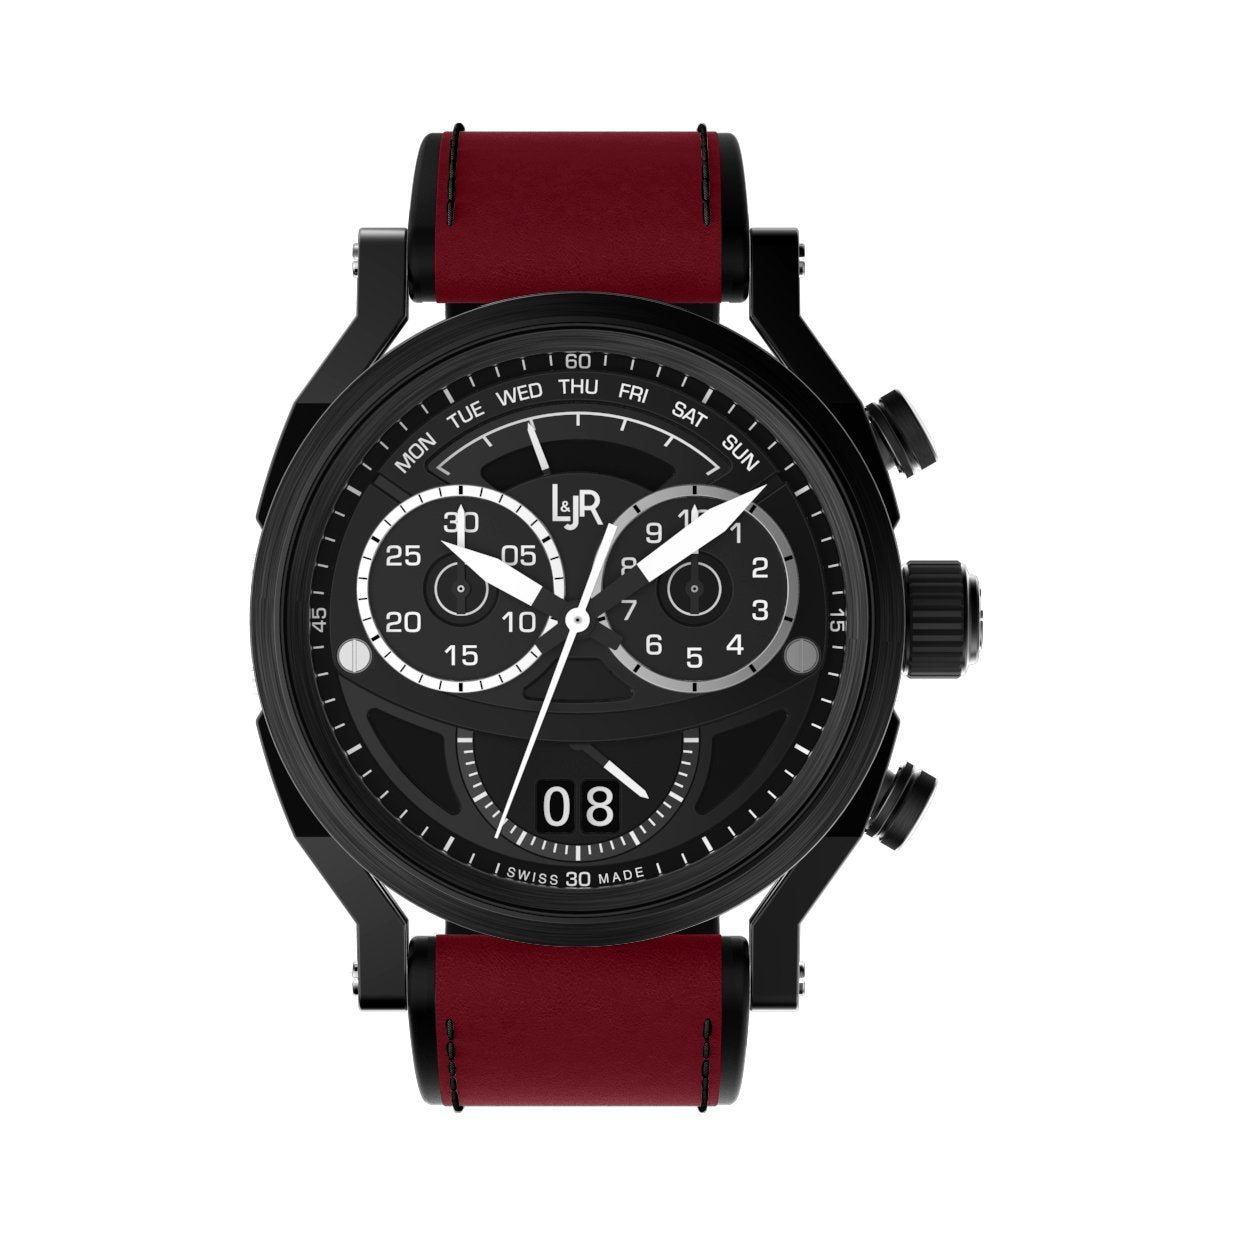 L&Jr Chronograph Day and Date Black PVD Burgundy - Watches & Crystals